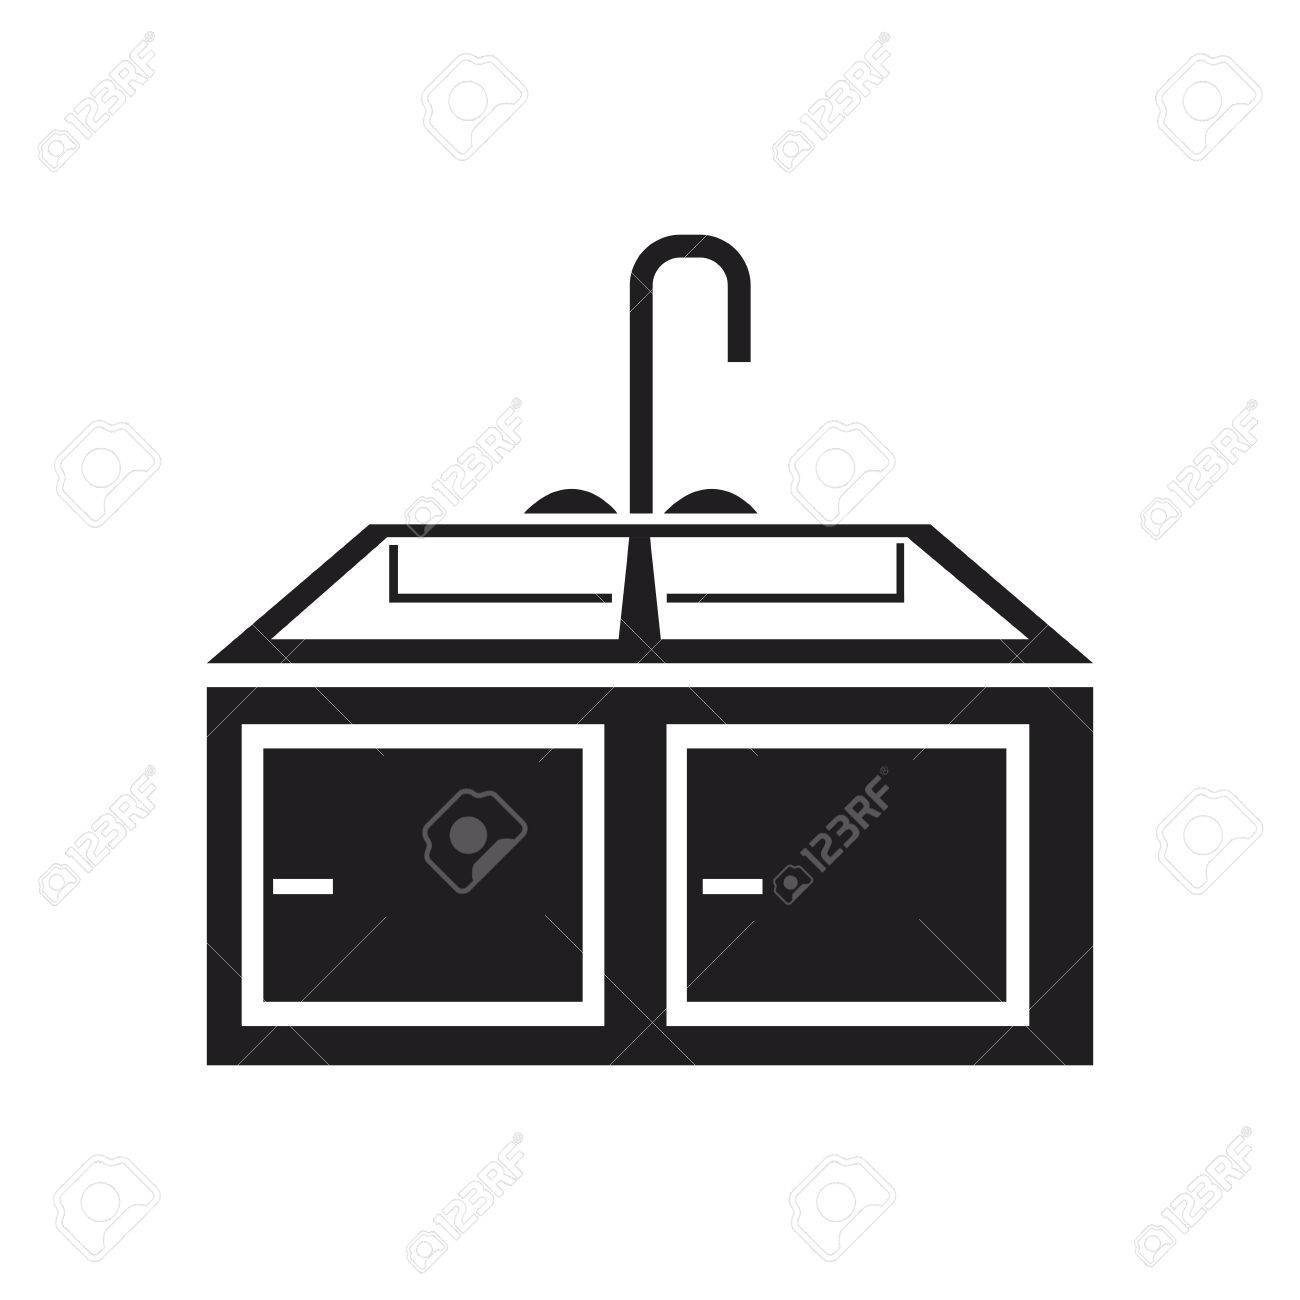 kitchen sink clipart black and white. kitchen sink with drying rack furniture vector illustration stock - 80128503 clipart black and white